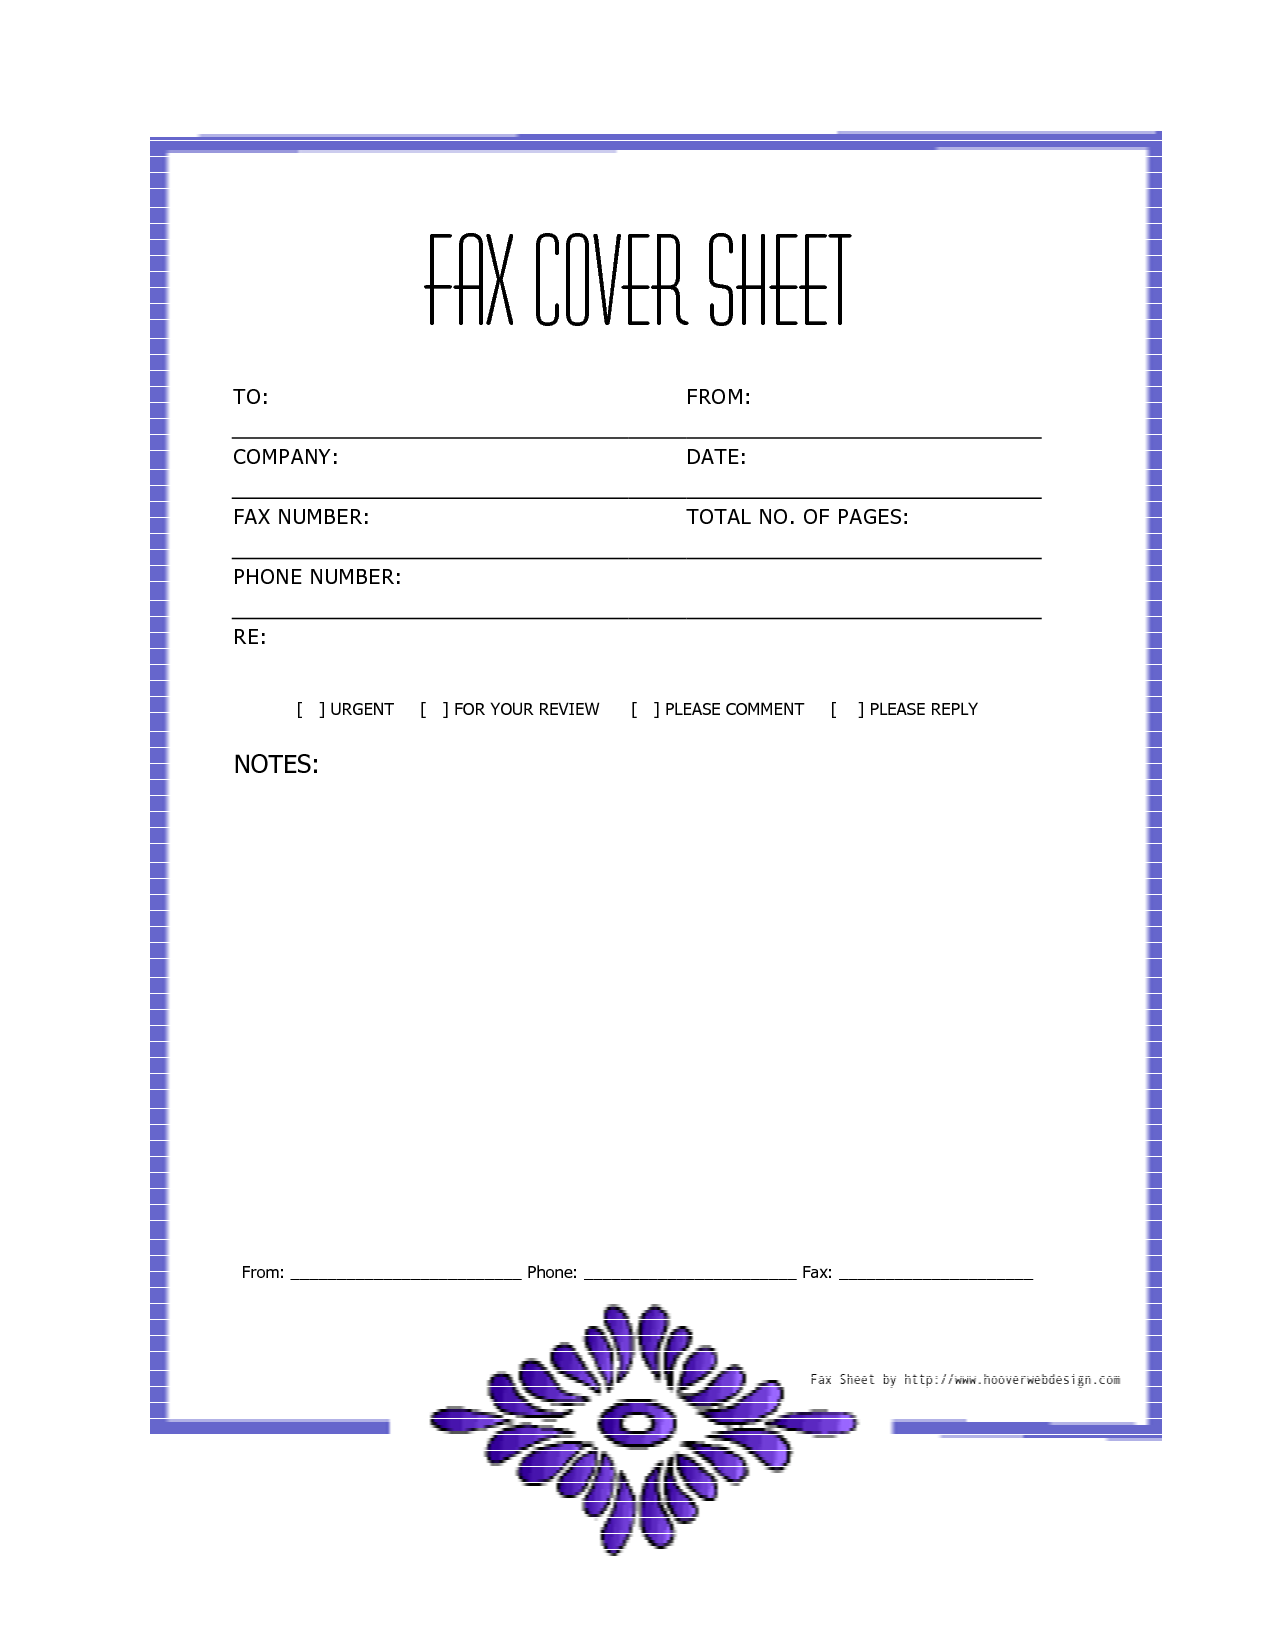 Free Downloads Fax Covers Sheets | Free Printable Fax Cover Sheet Template  Elegant   Download As  Fax Cover Letter Templates